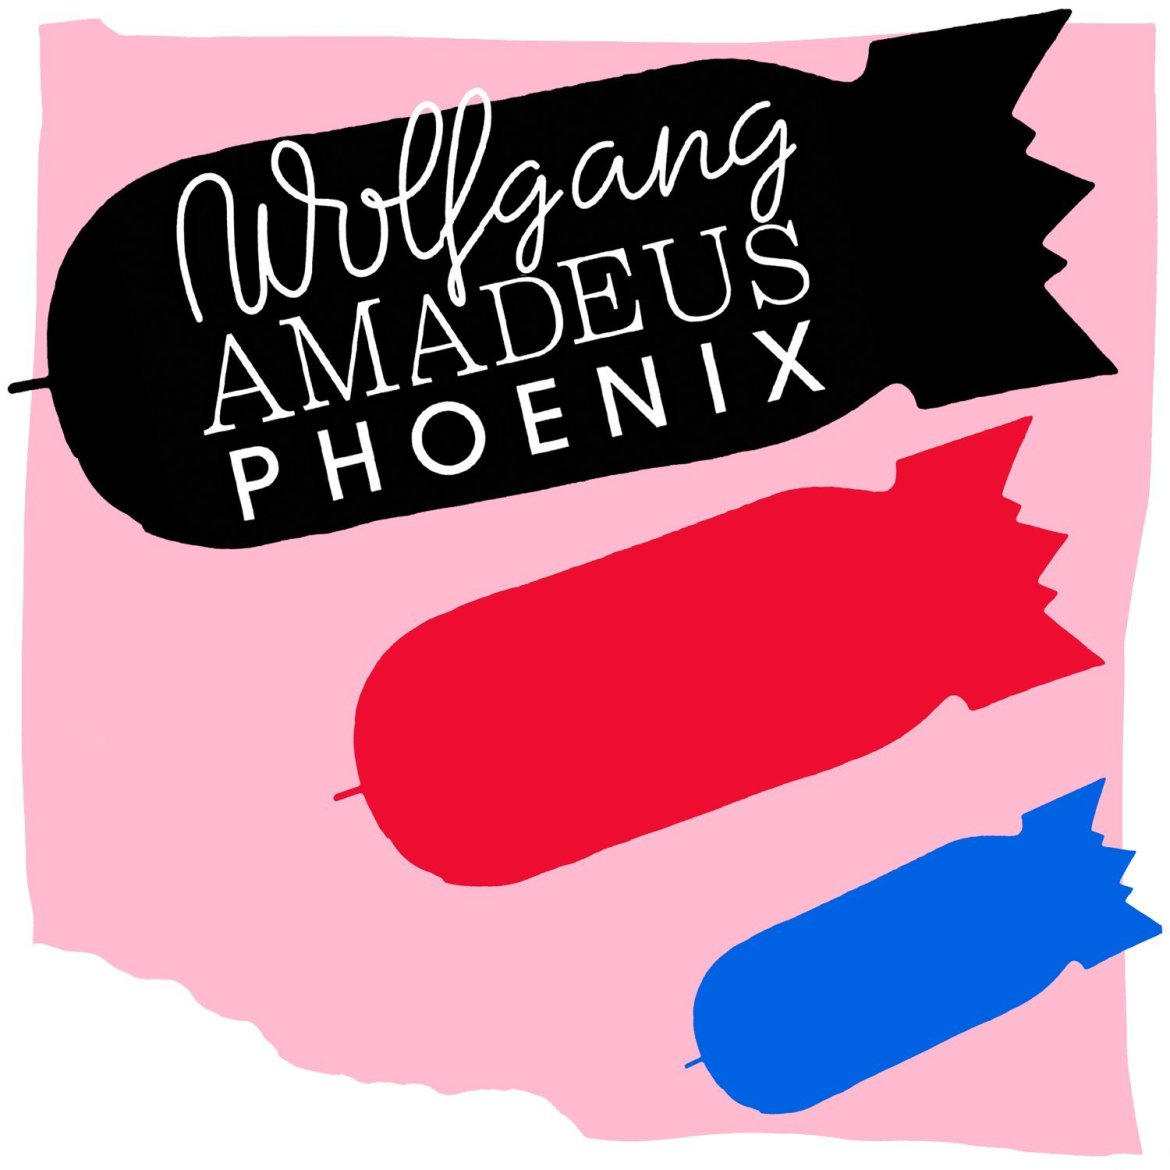 """The album cover has a black bomb, red bomb, and blue bomb on top of a pink background, with """"Wolfgang Amadeus Phoenix"""" written on top of the black bomb"""